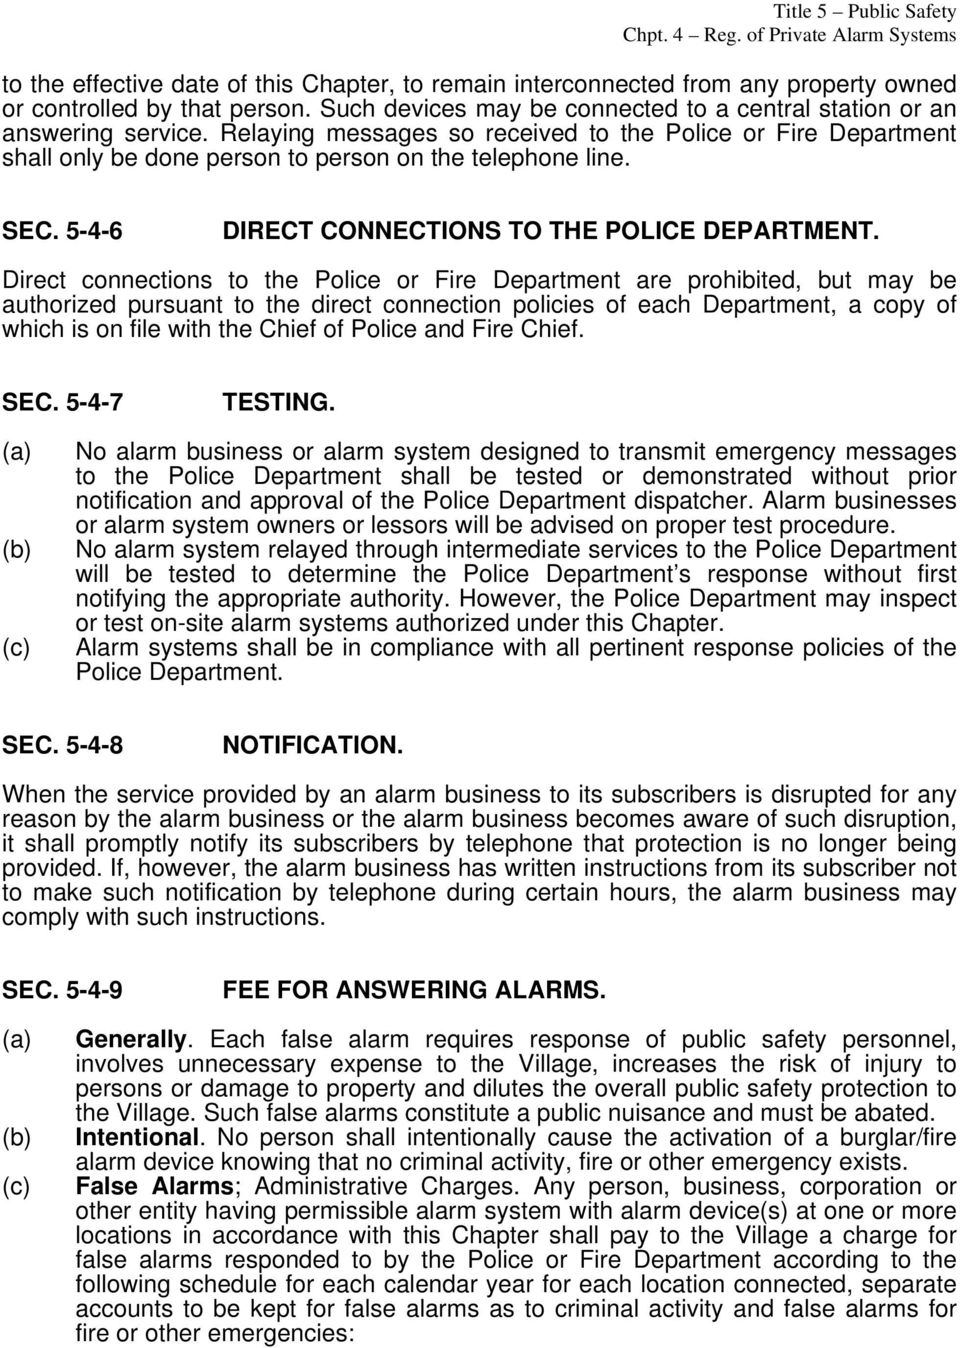 Direct connections to the Police or Fire Department are prohibited, but may be authorized pursuant to the direct connection policies of each Department, a copy of which is on file with the Chief of